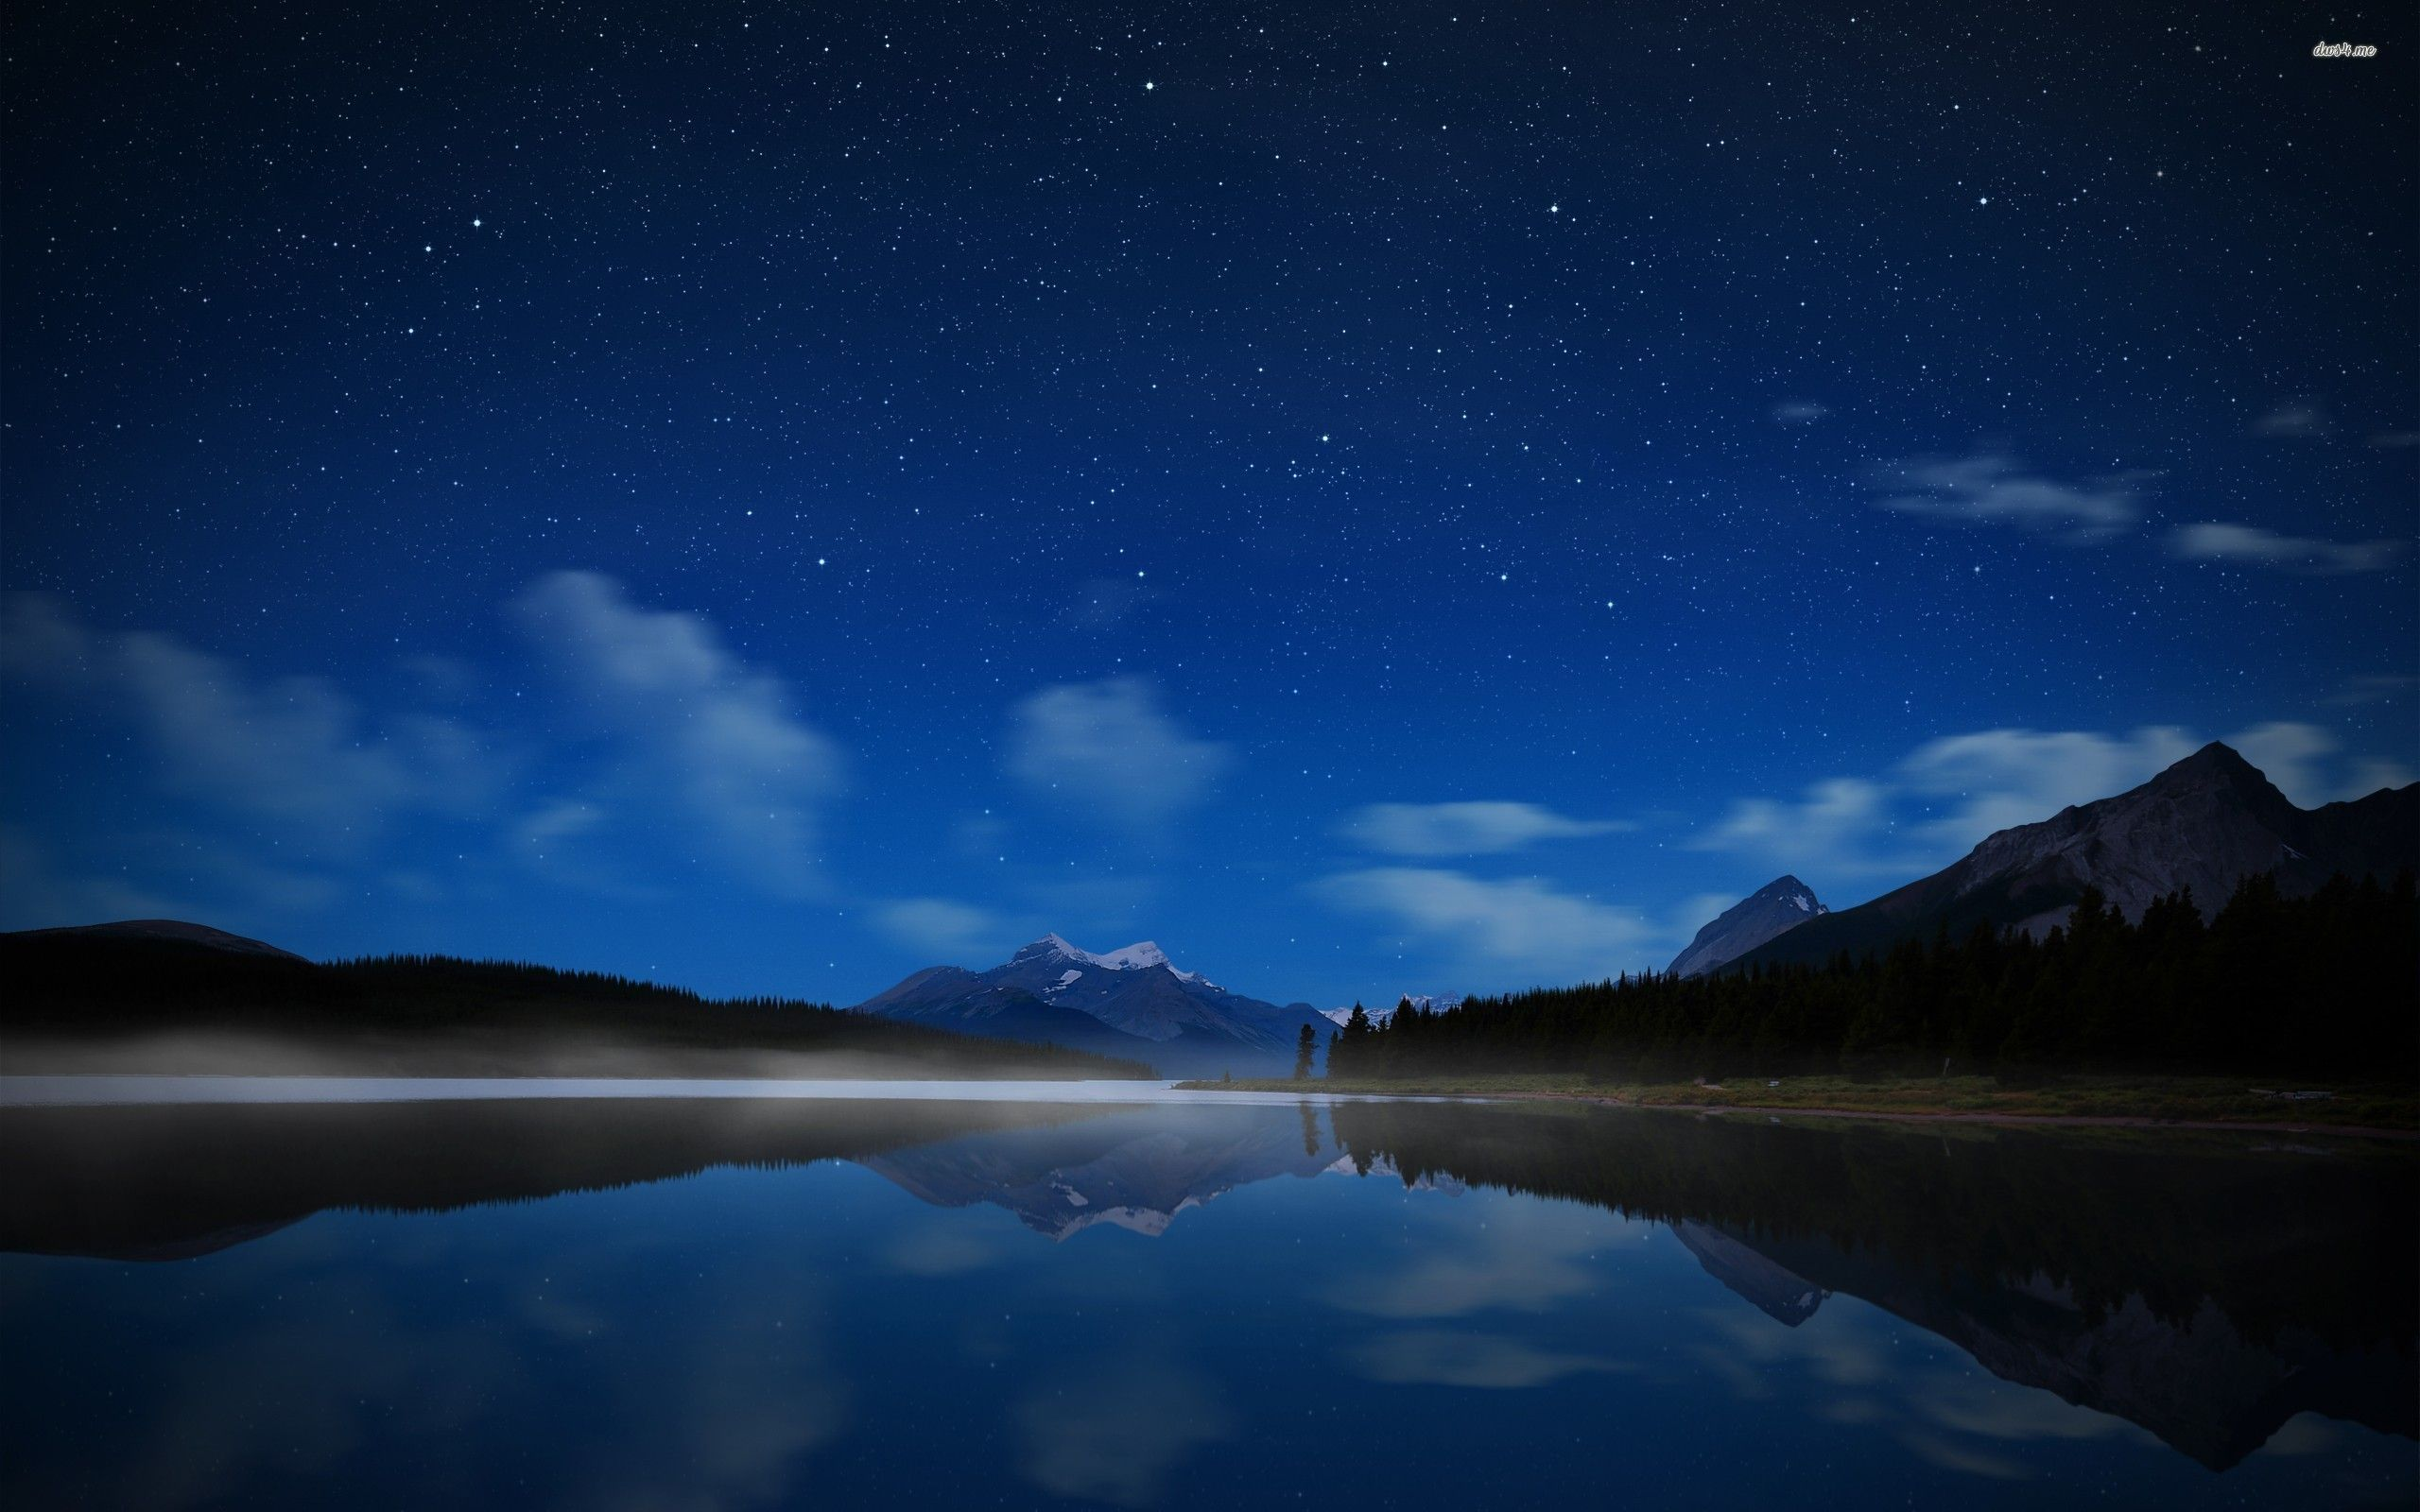 night sky wallpapers - full hd wallpaper search - page 10 | bright